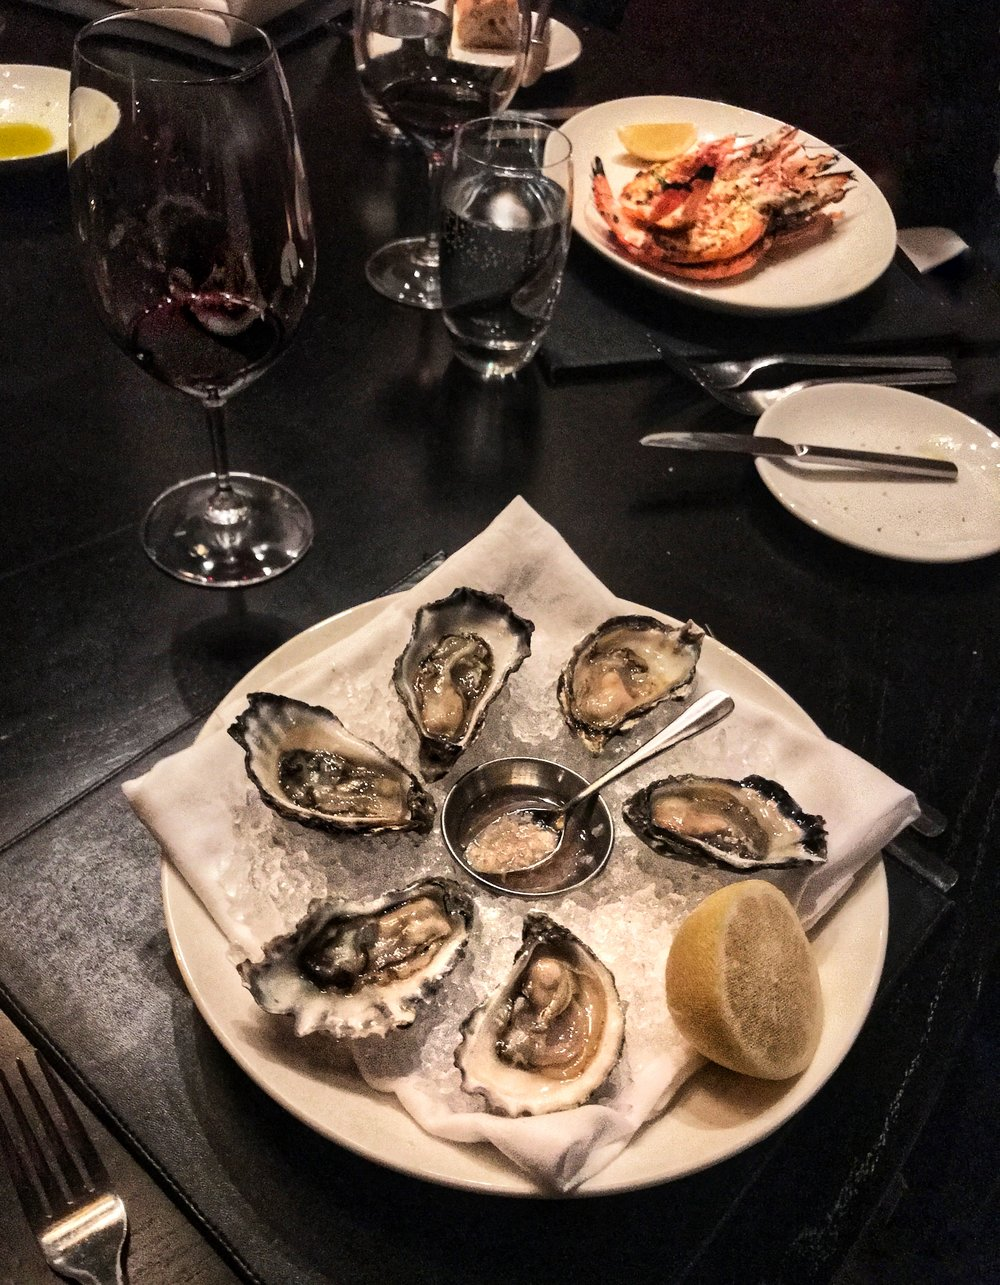 Freshly Shucked Oysters with Mignonette Sauce.